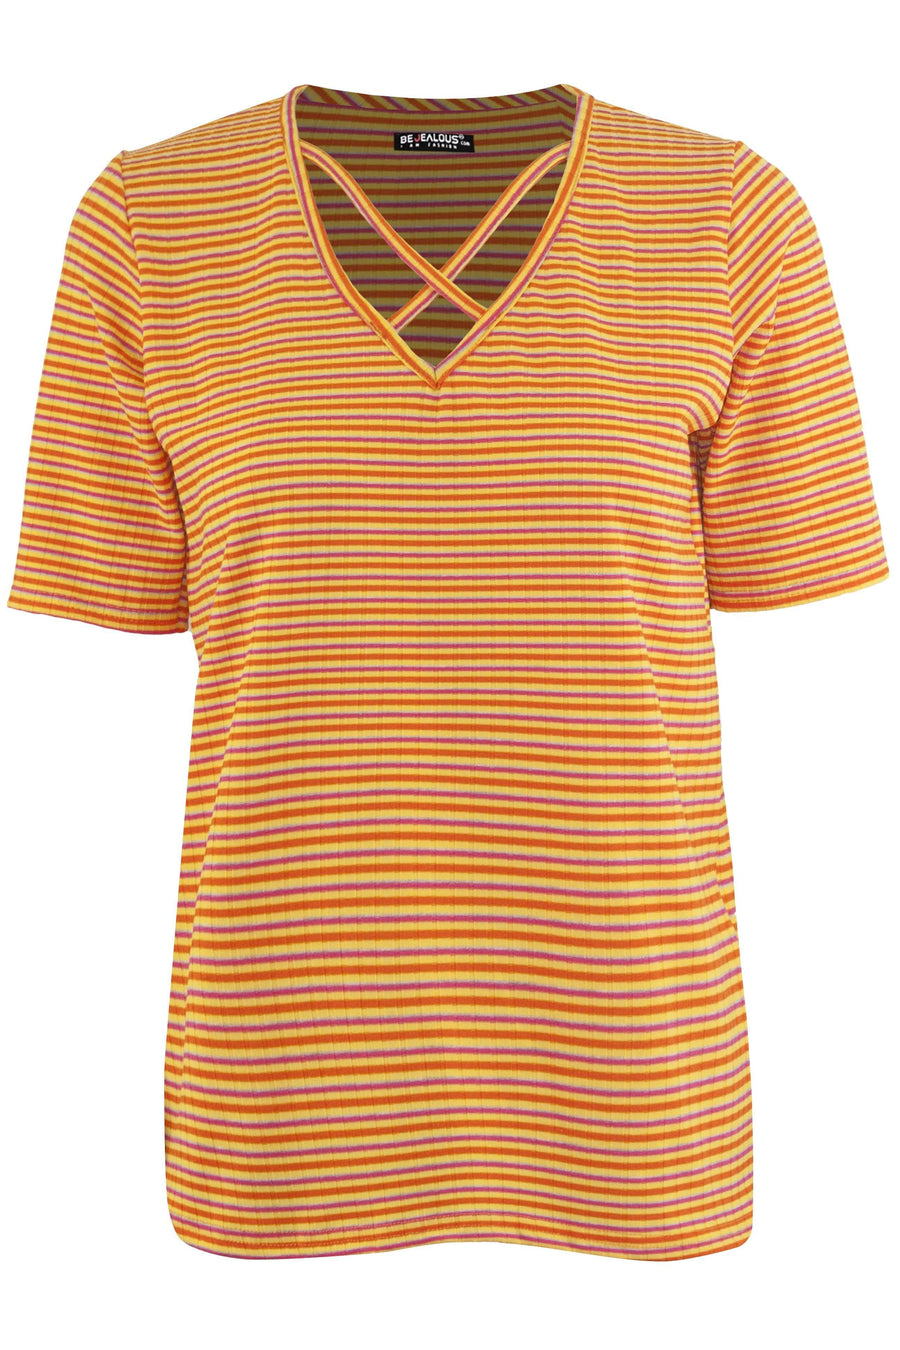 Kaya Mulitcolour Striped Strappy Baggy Tshirt - bejealous-com